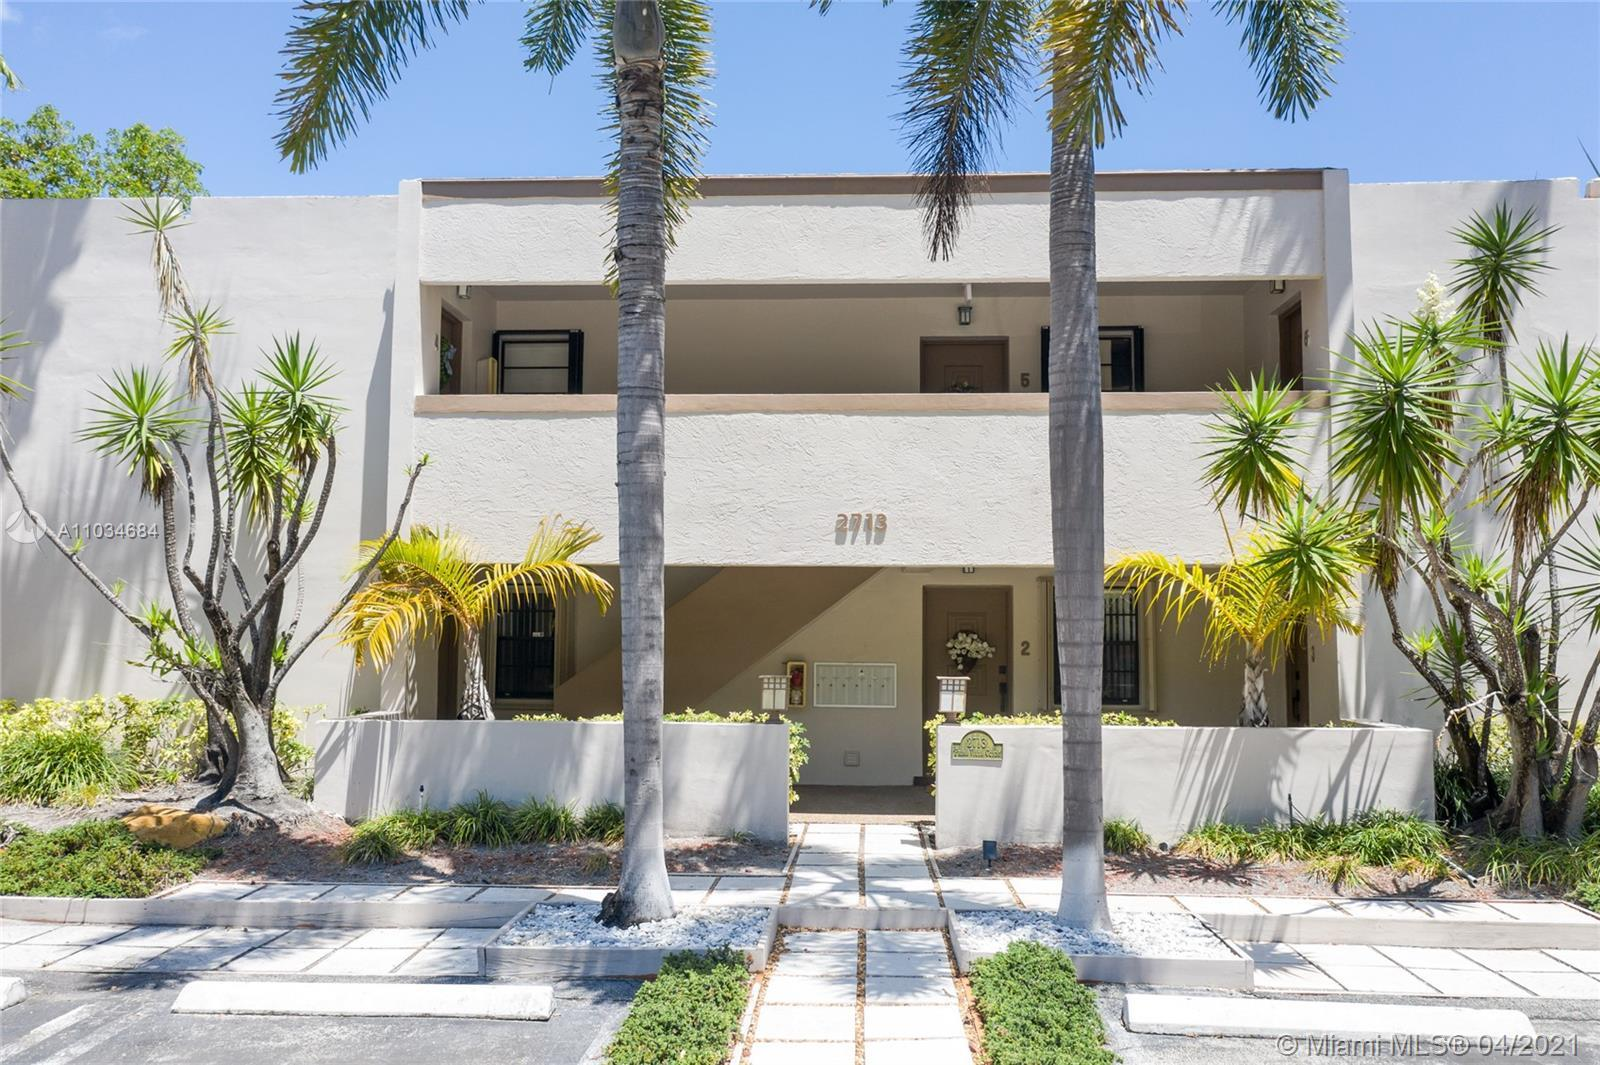 Located in the desirable Ft. Lauderdale neighborhood of Coral Ridge, WOW!! this 2 bedroom/2 bathroom